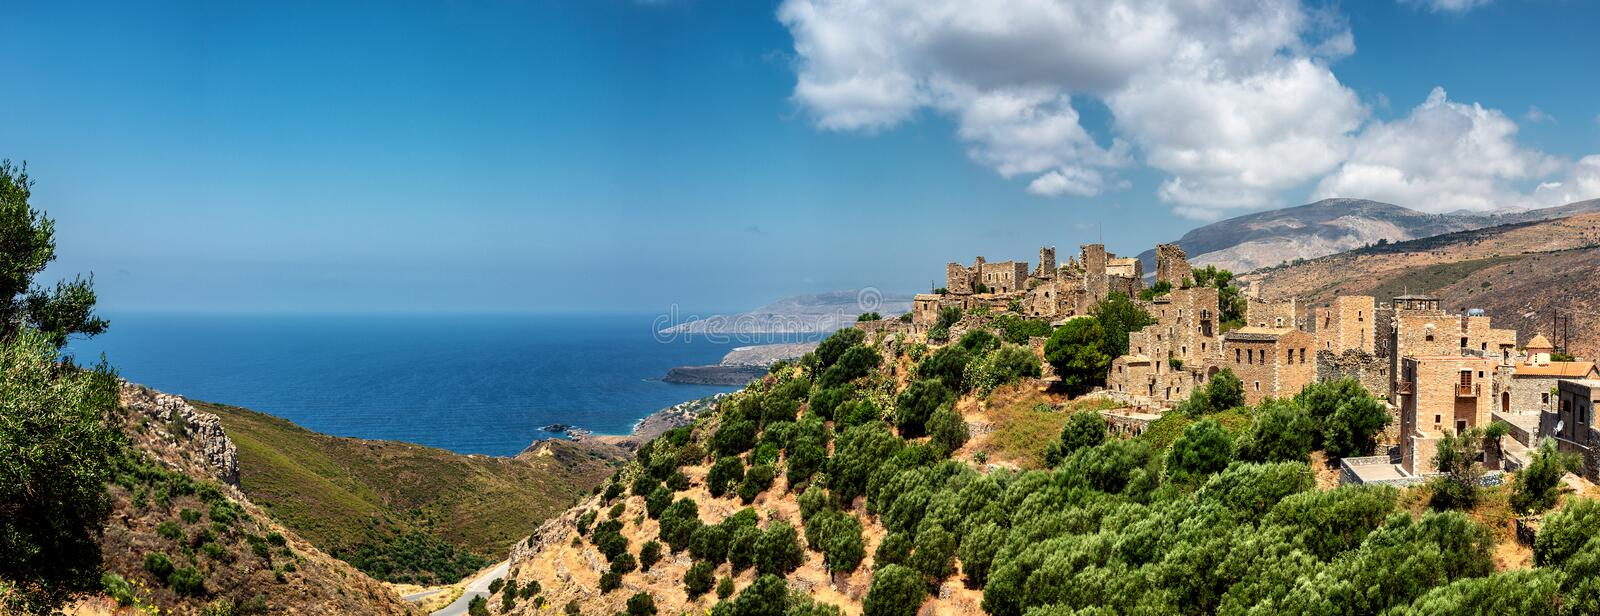 Vatheia, a village on the Mani Peninsula, in Greece. A major tourist attraction and an iconic example of the south Maniot vernacular architecture stock photo